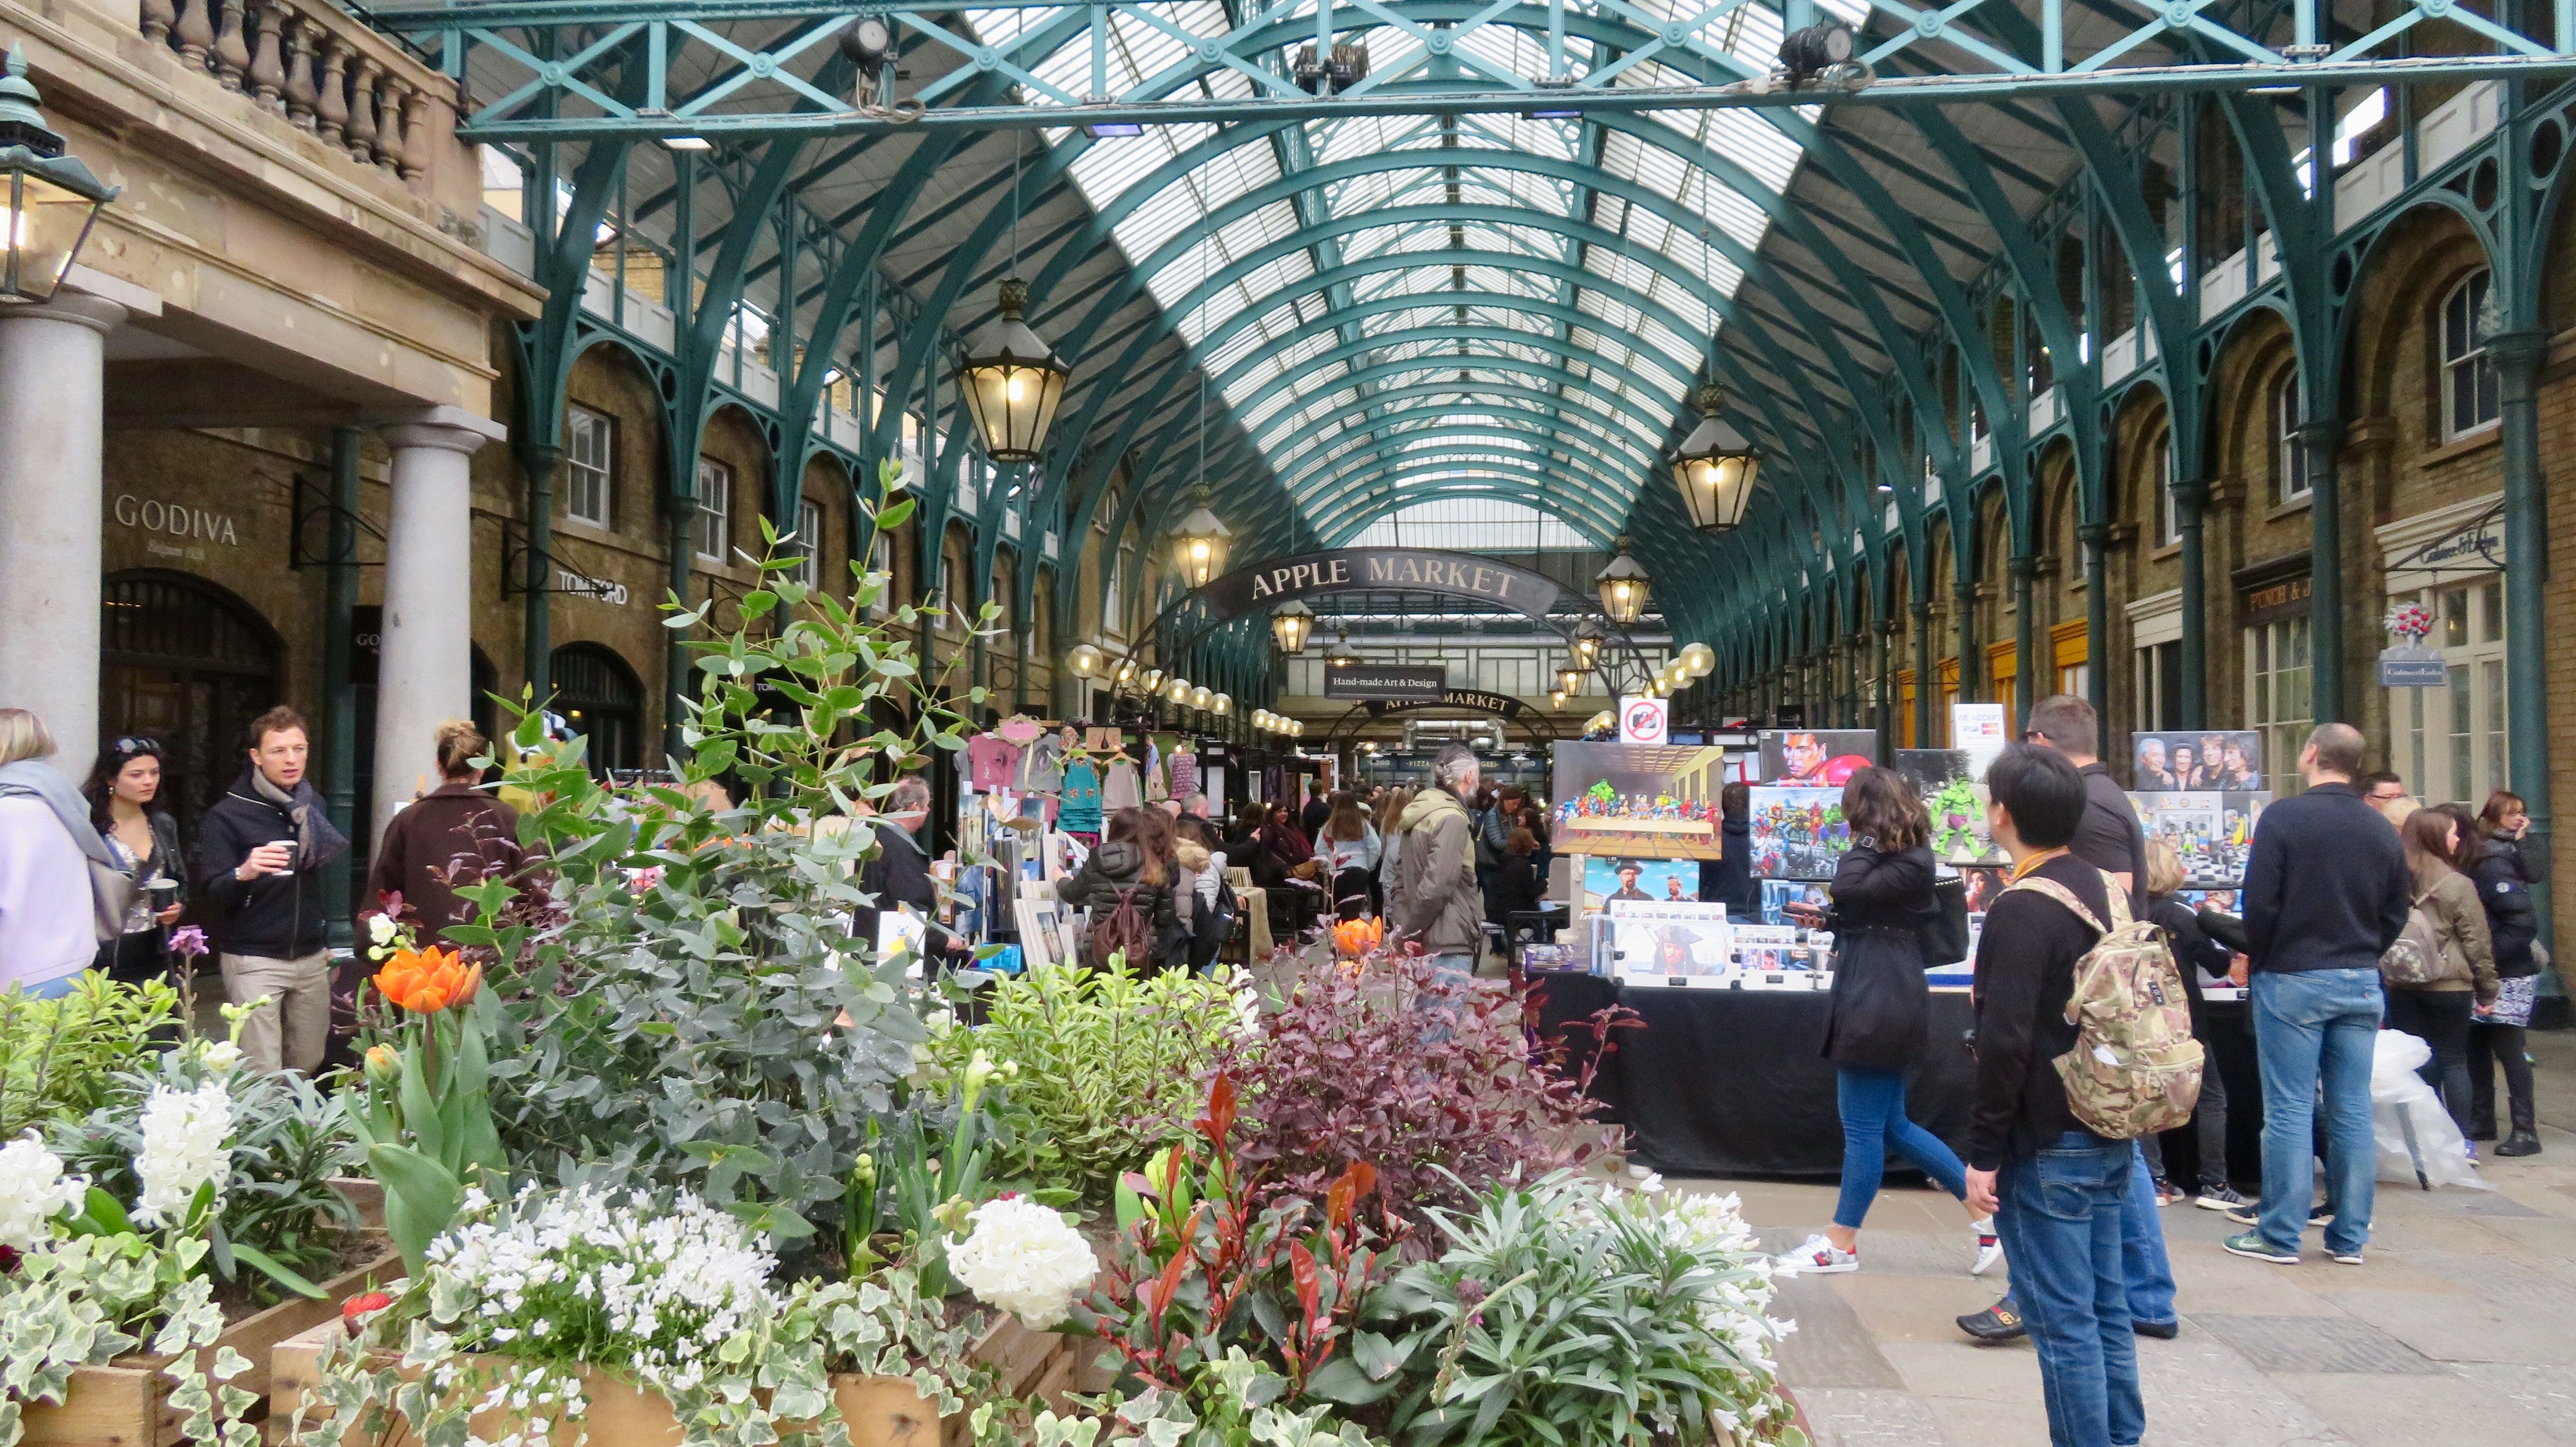 The Old 1830 Covent Garden Market in London England bit.ly